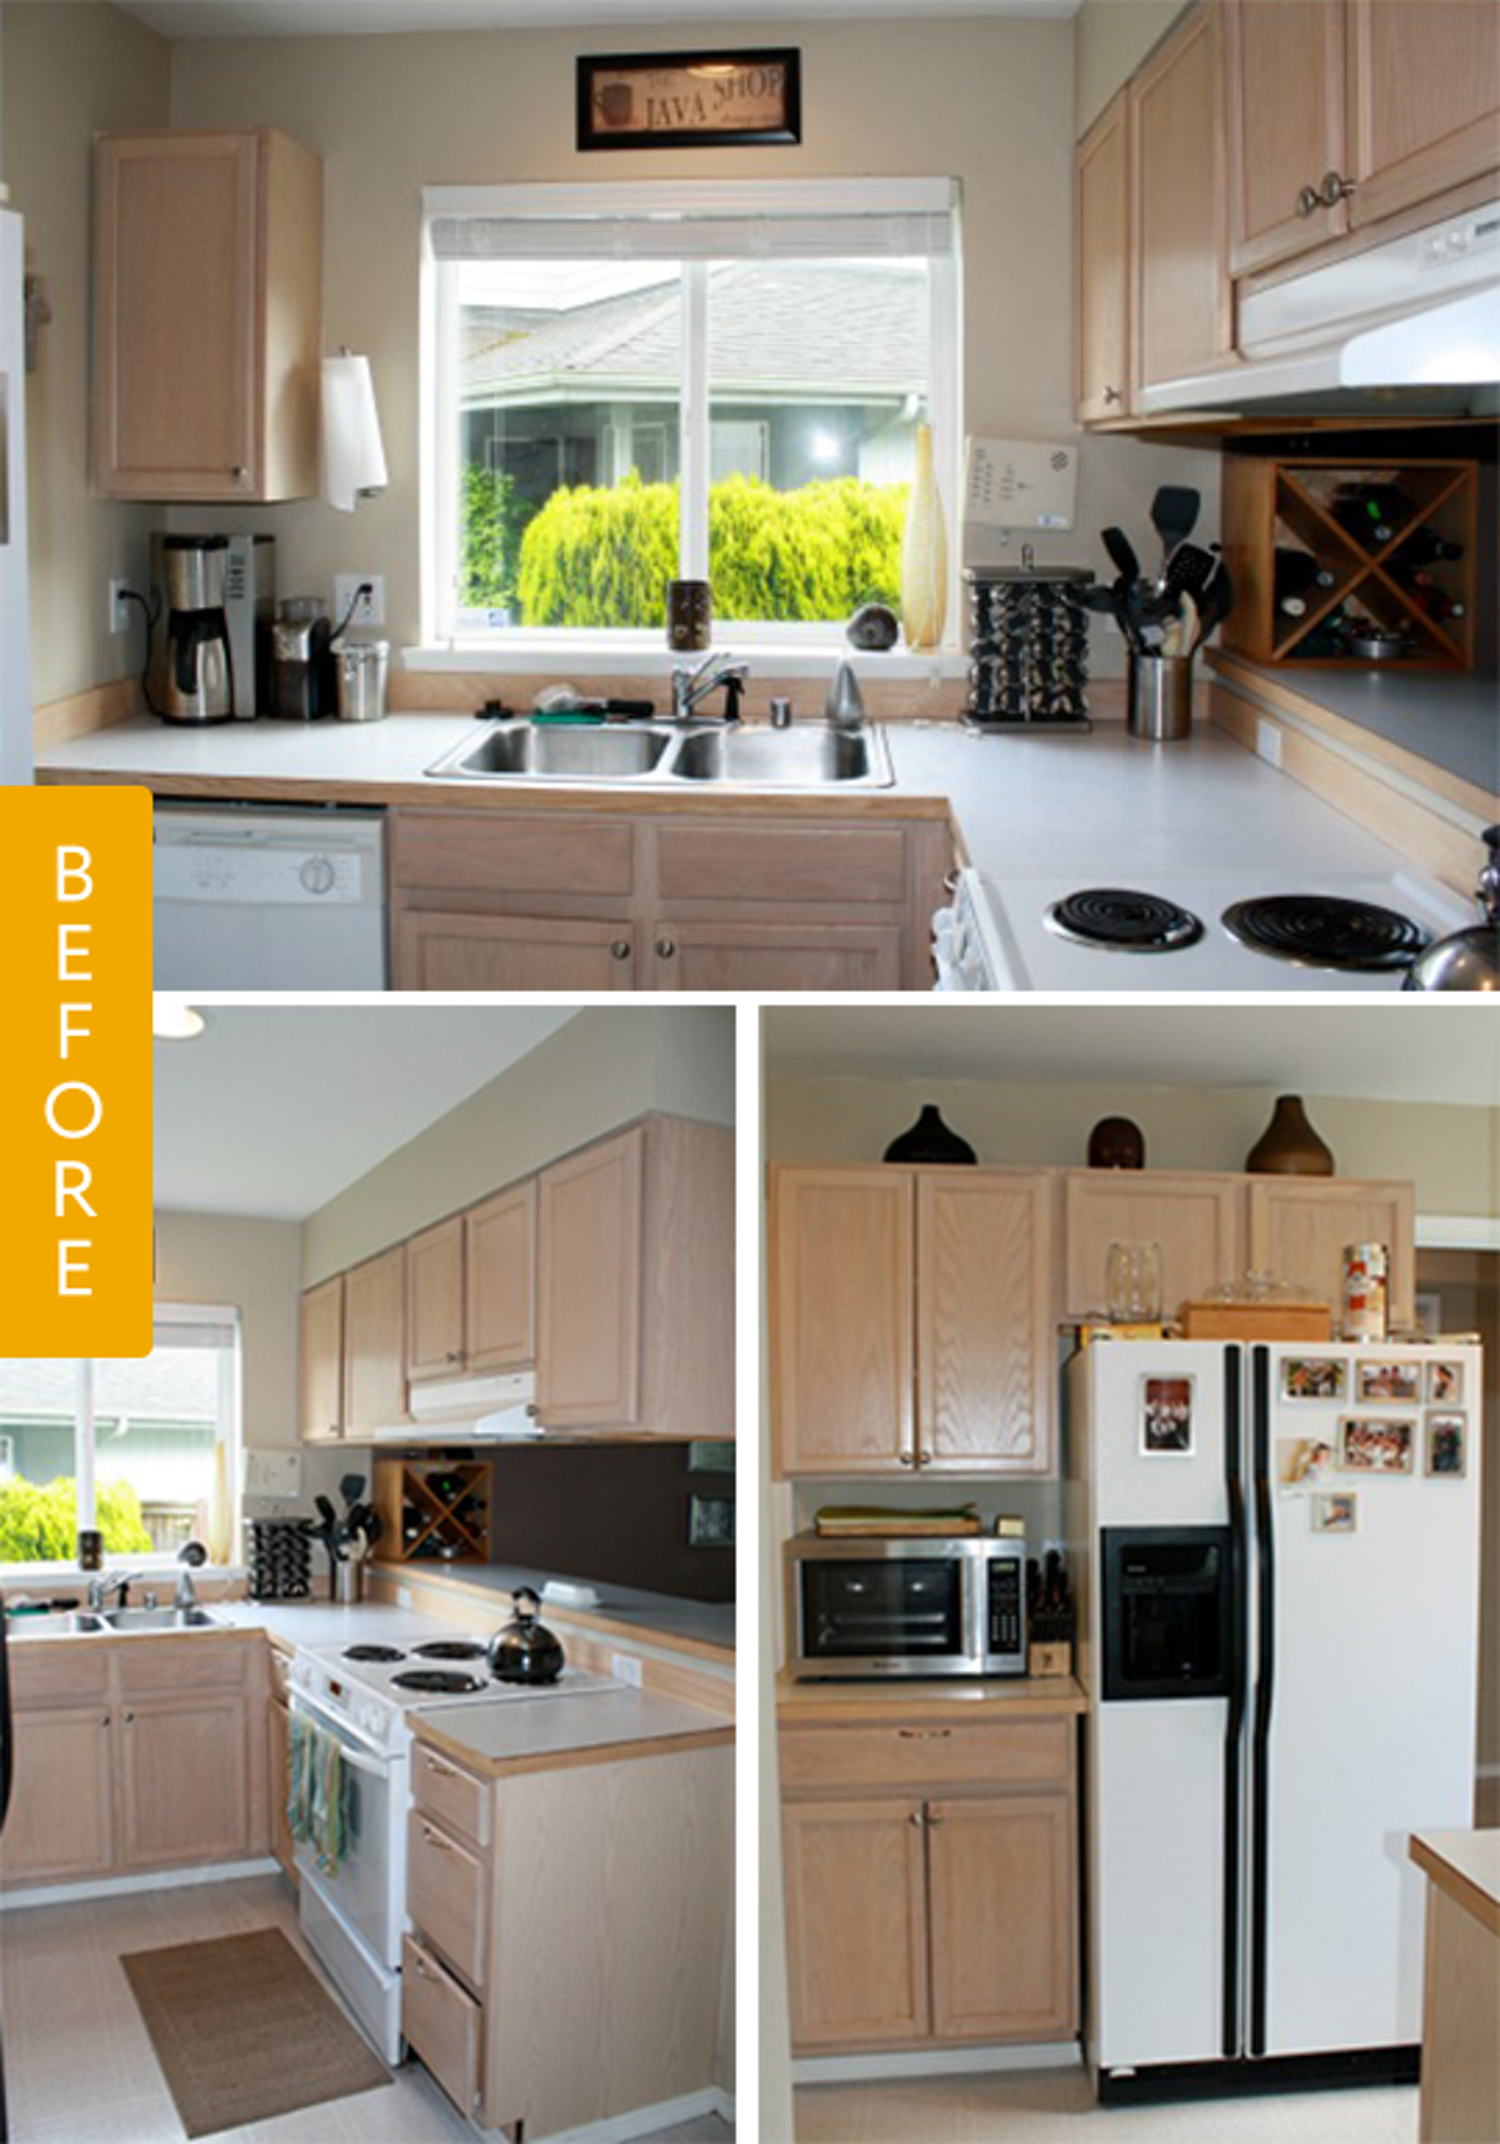 Before U0026 After: A Basic Kitchen Gets A Farmhouse Style Update U2014 Kitchen  Remodel